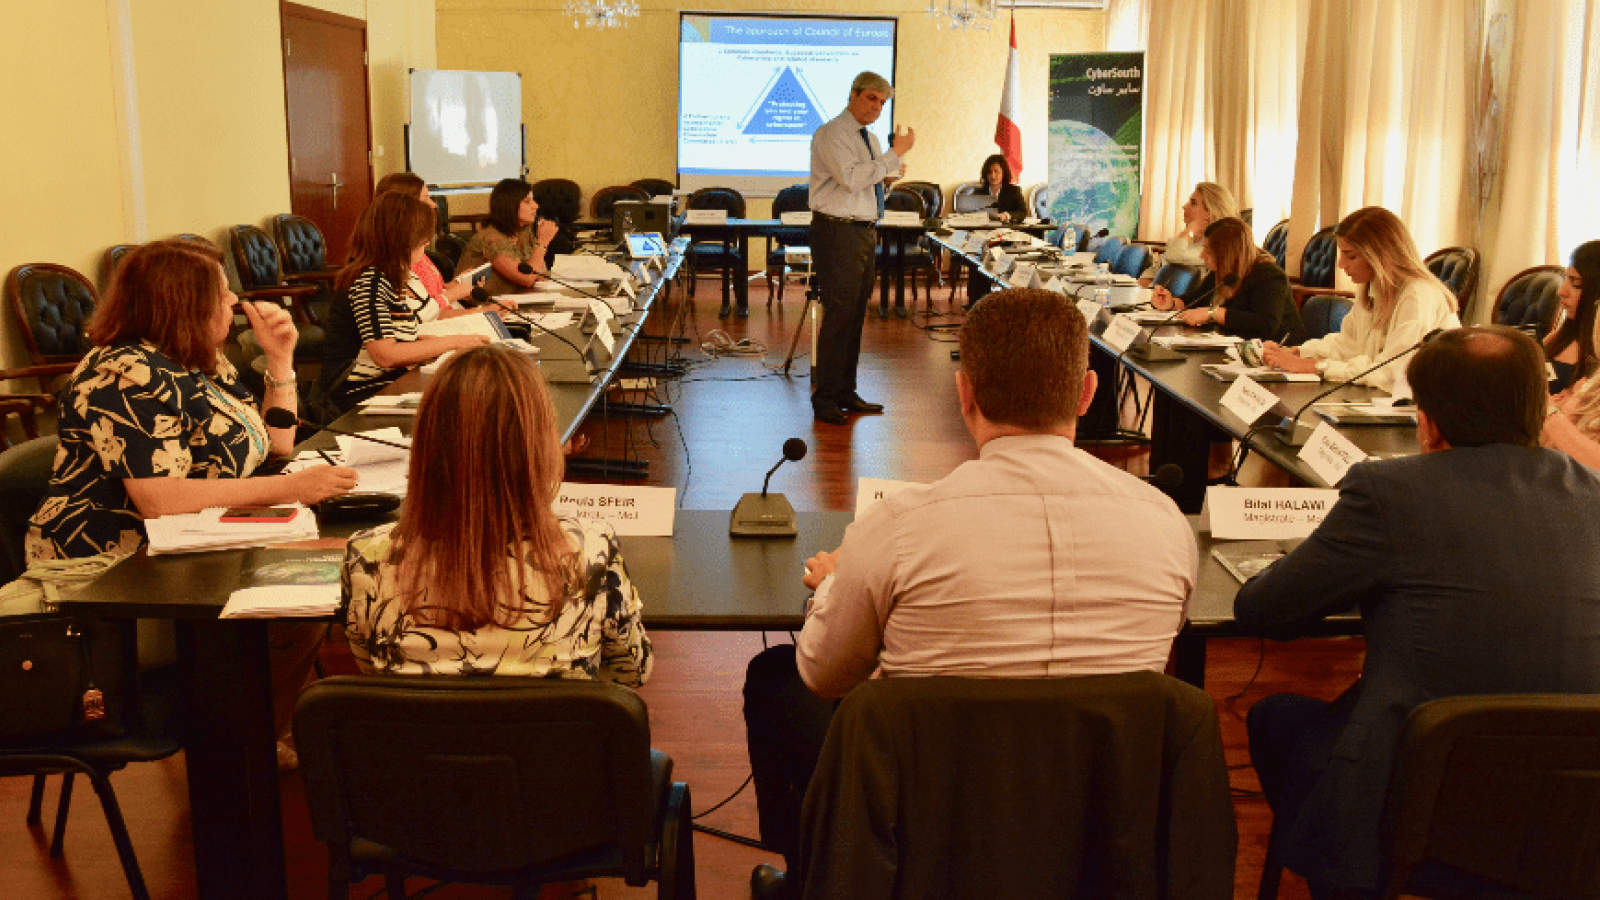 CyberSouth basic judicial training on cybercrime and electronic evidence in Lebanon